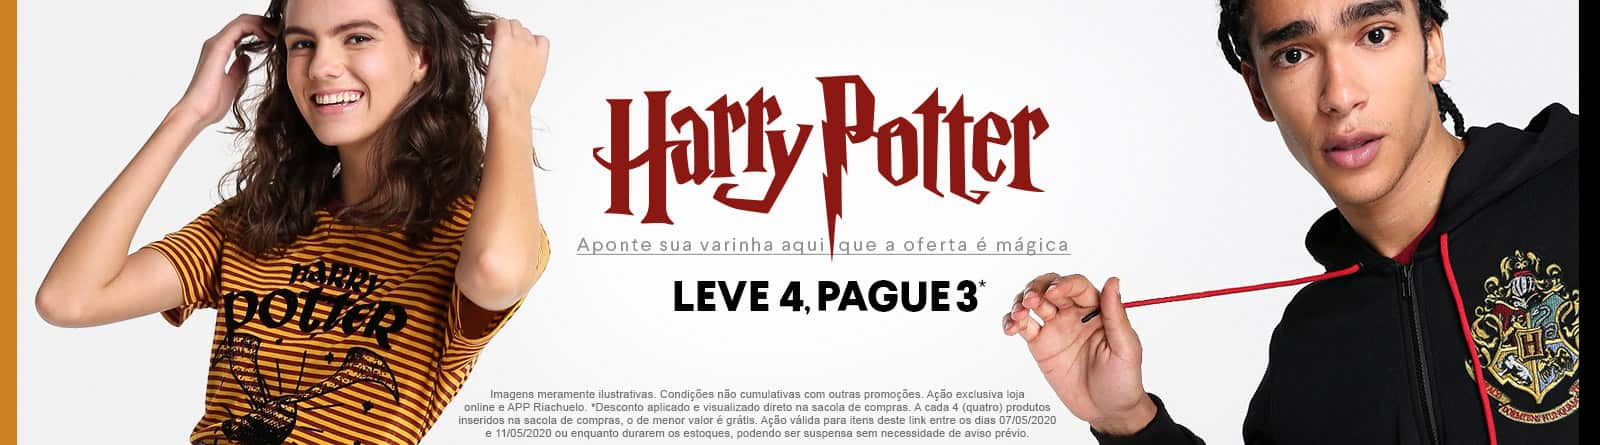 Riachuelo - Harry Potter